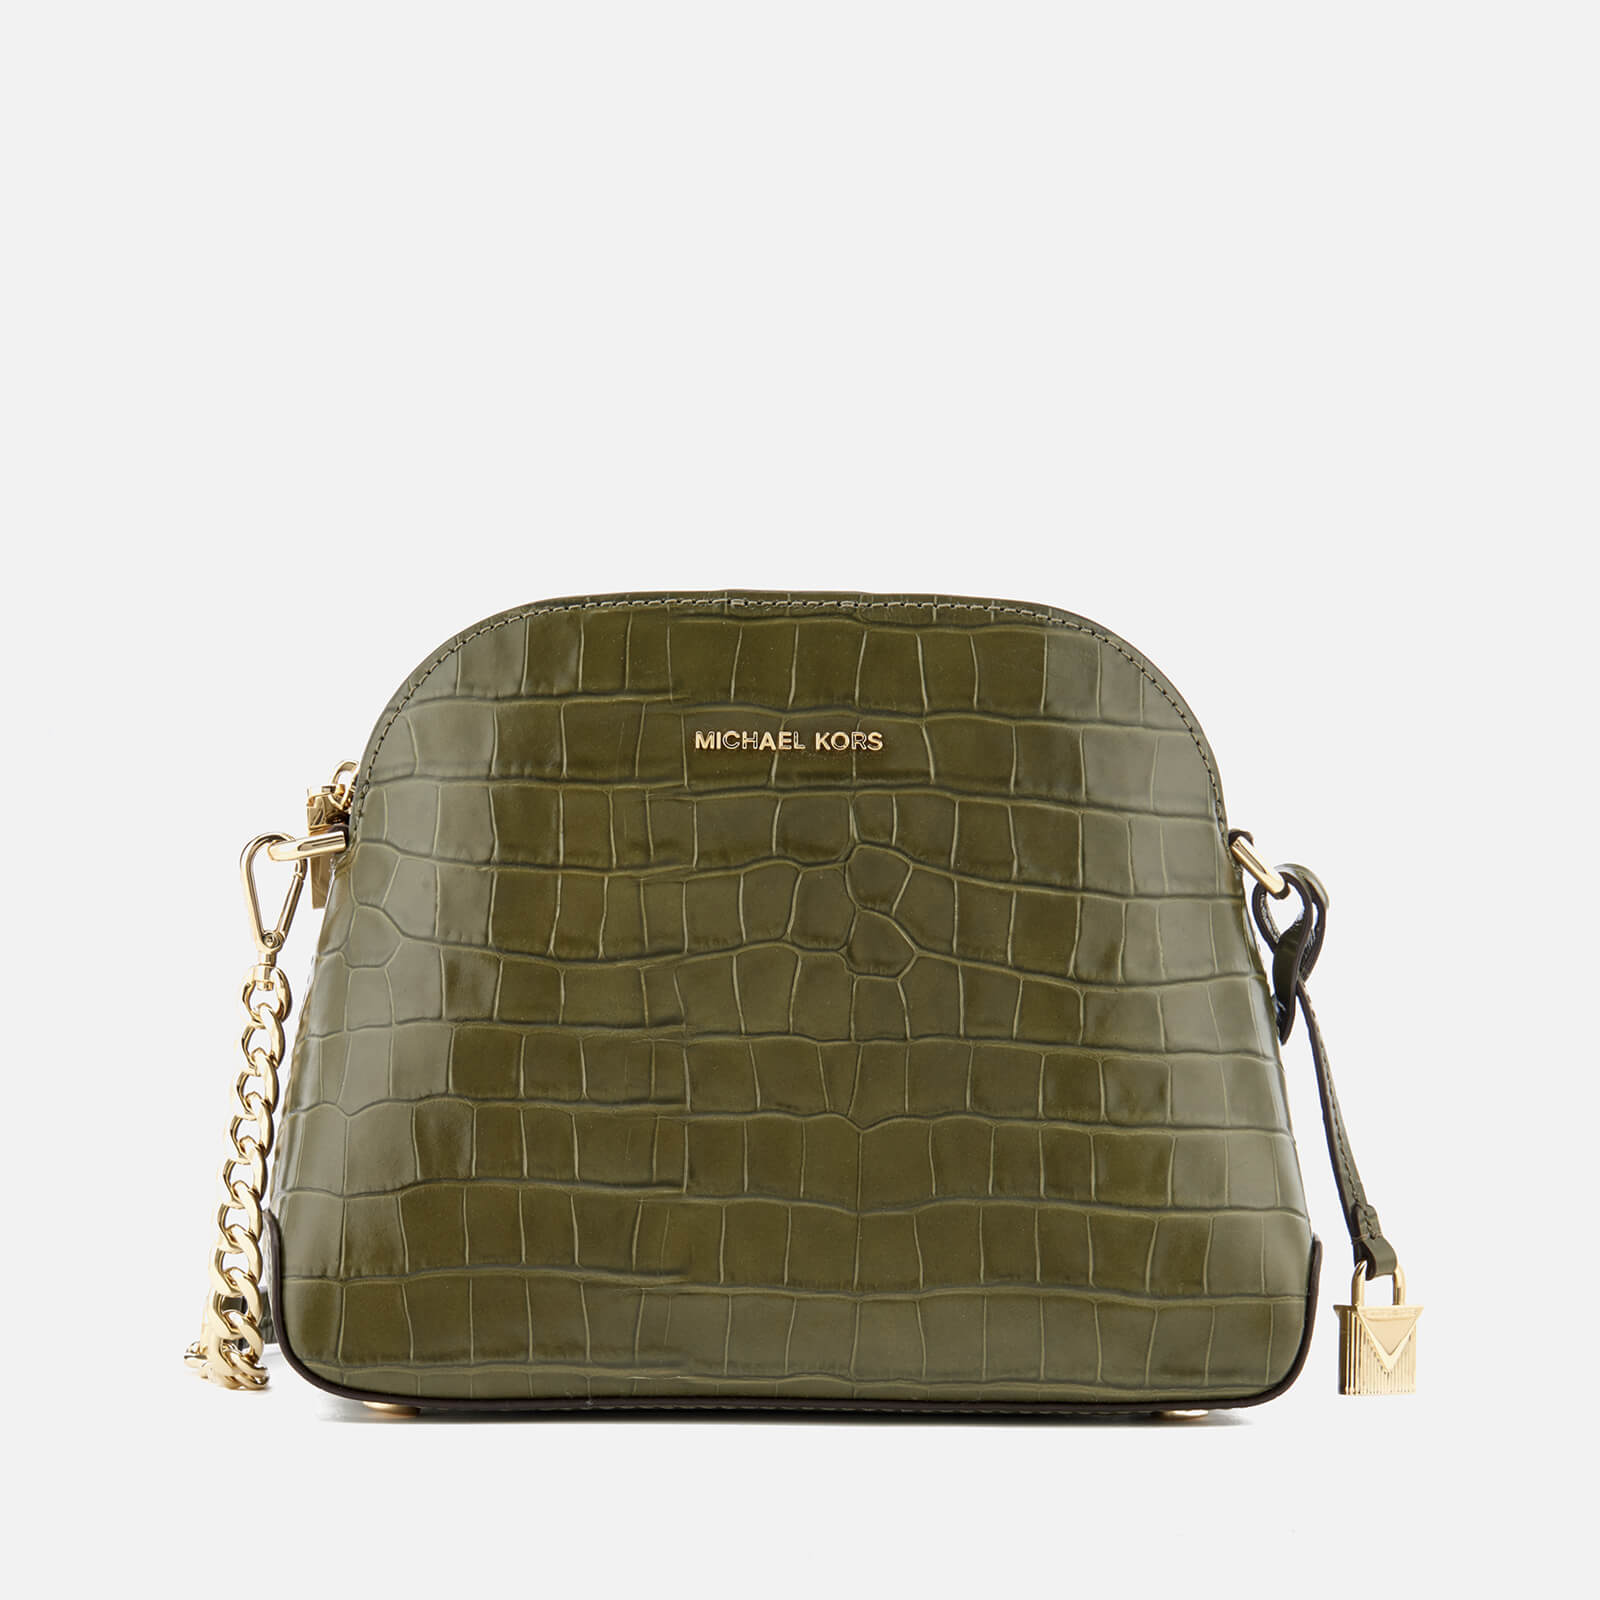 80a31fb0ccaa MICHAEL MICHAEL KORS Women's Mercer Medium Dome Cross Body Satchel - Olive  - Free UK Delivery over £50